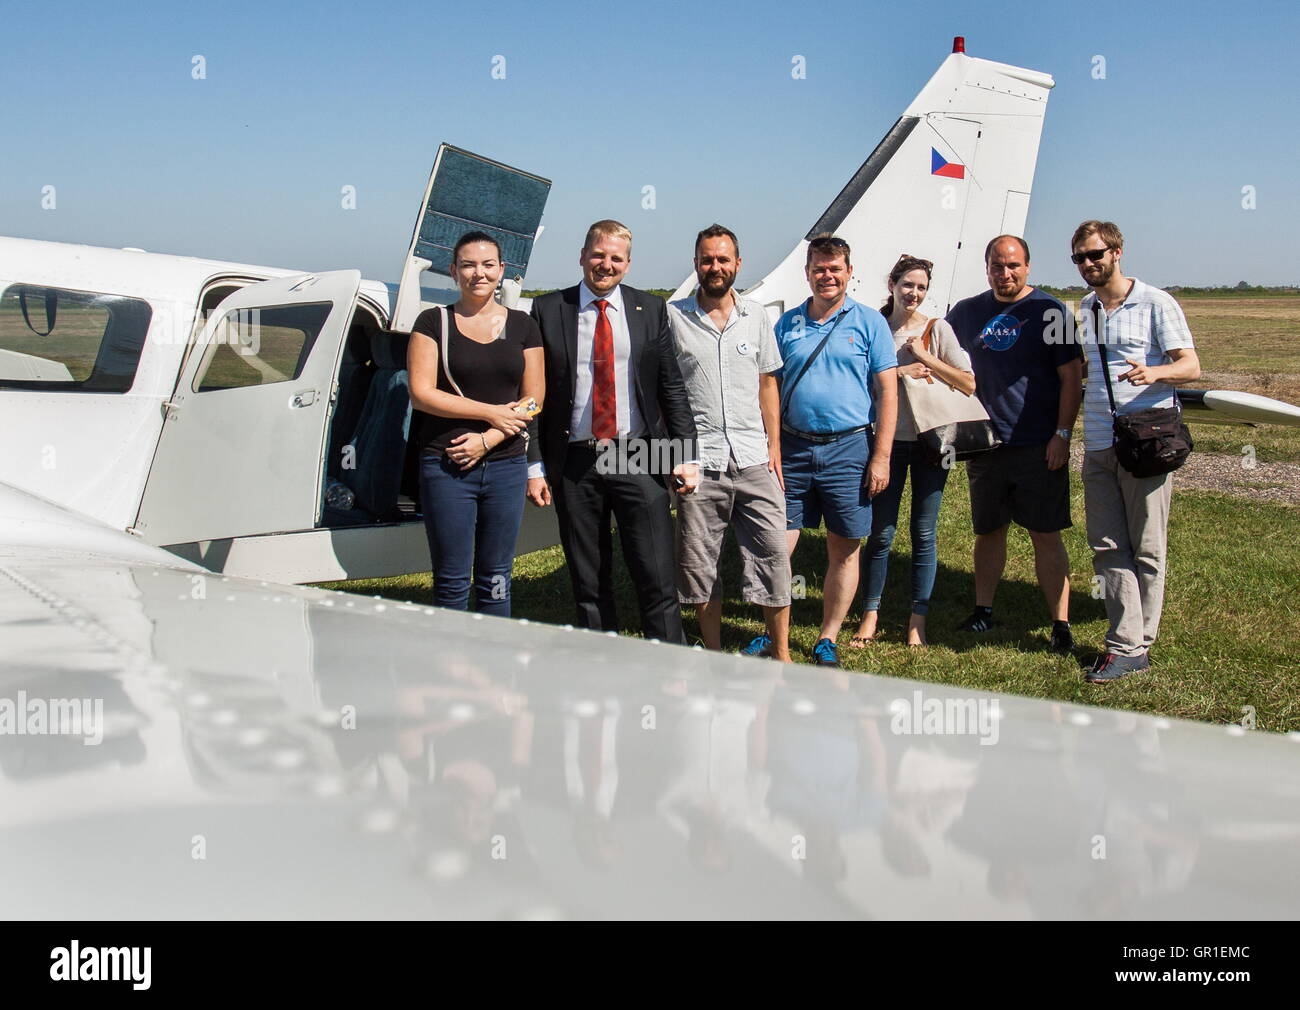 Aug 29, 2016 - Liberland - The crew that came back from Serbia to Czech Republic. President of Liberland VIT JEDLICKA - Stock Image